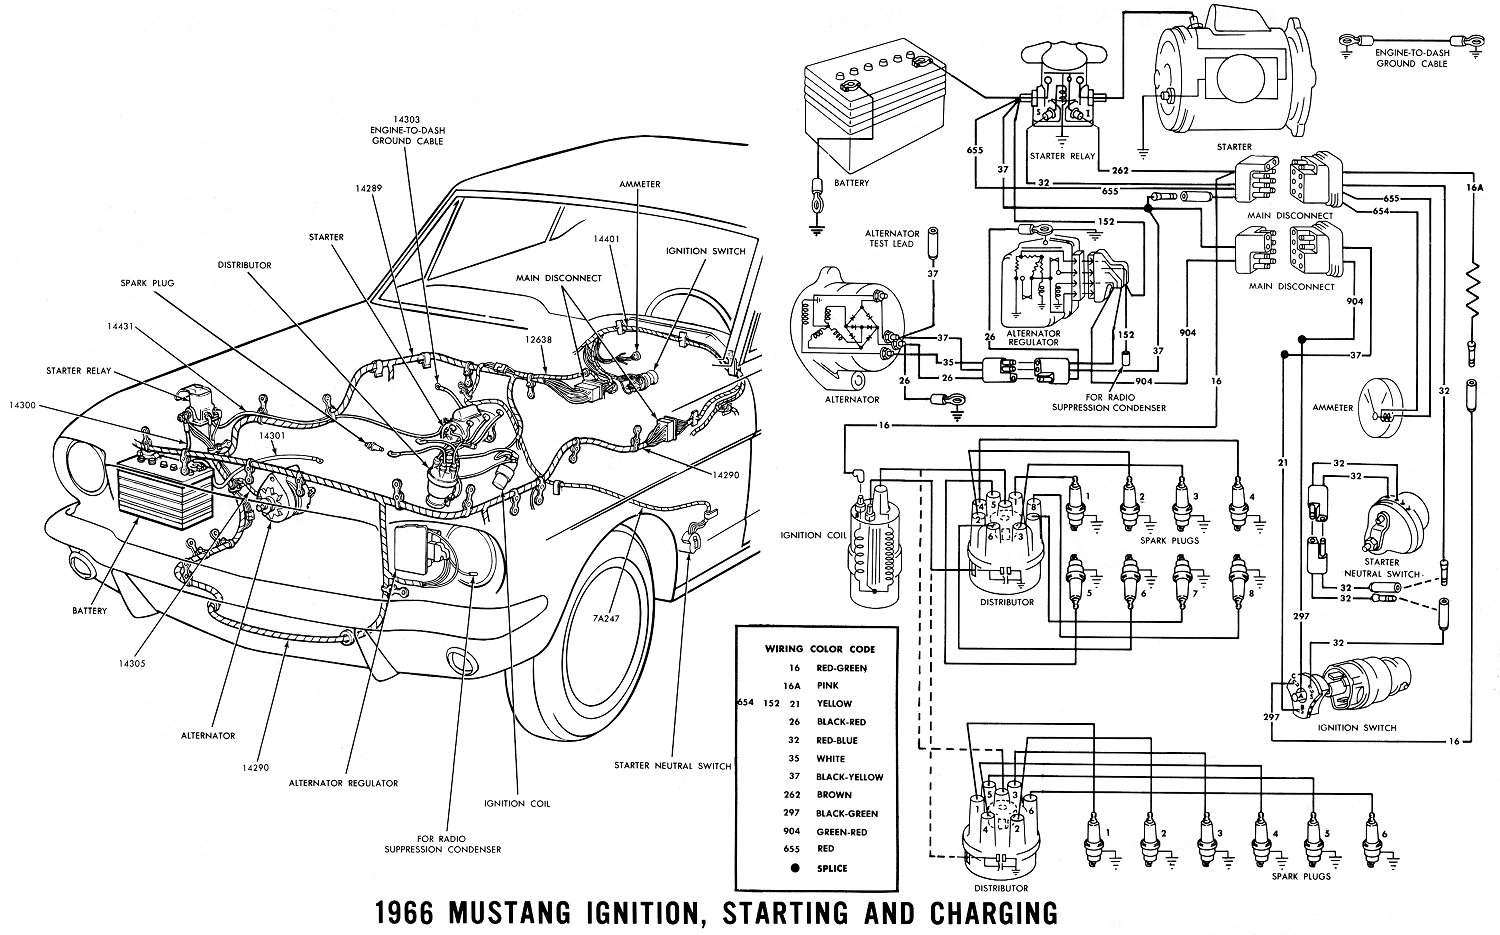 jetta wagon fuse box with 1966 Mustang Wiring Diagrams on 2002 Dodge Ram 2500 Engine Diagram likewise 2001 Vw Pat Fuse Box Diagram moreover 1966 Mustang Ignition Wiring Diagram together with 1966 Mustang Wiring Diagrams furthermore F150 Radiator Diagram.